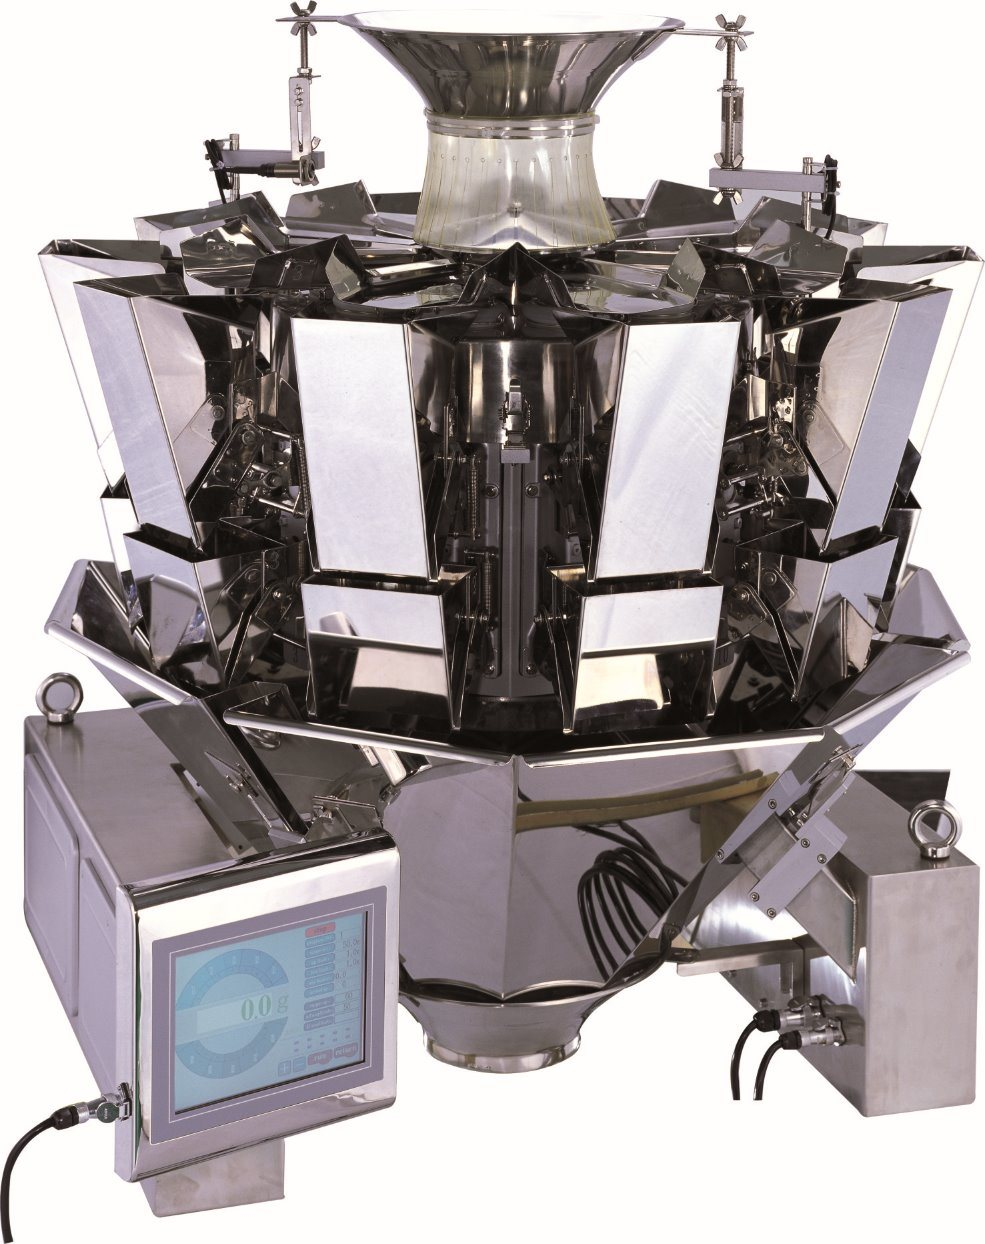 10 Heads Automatic Weigher for Food